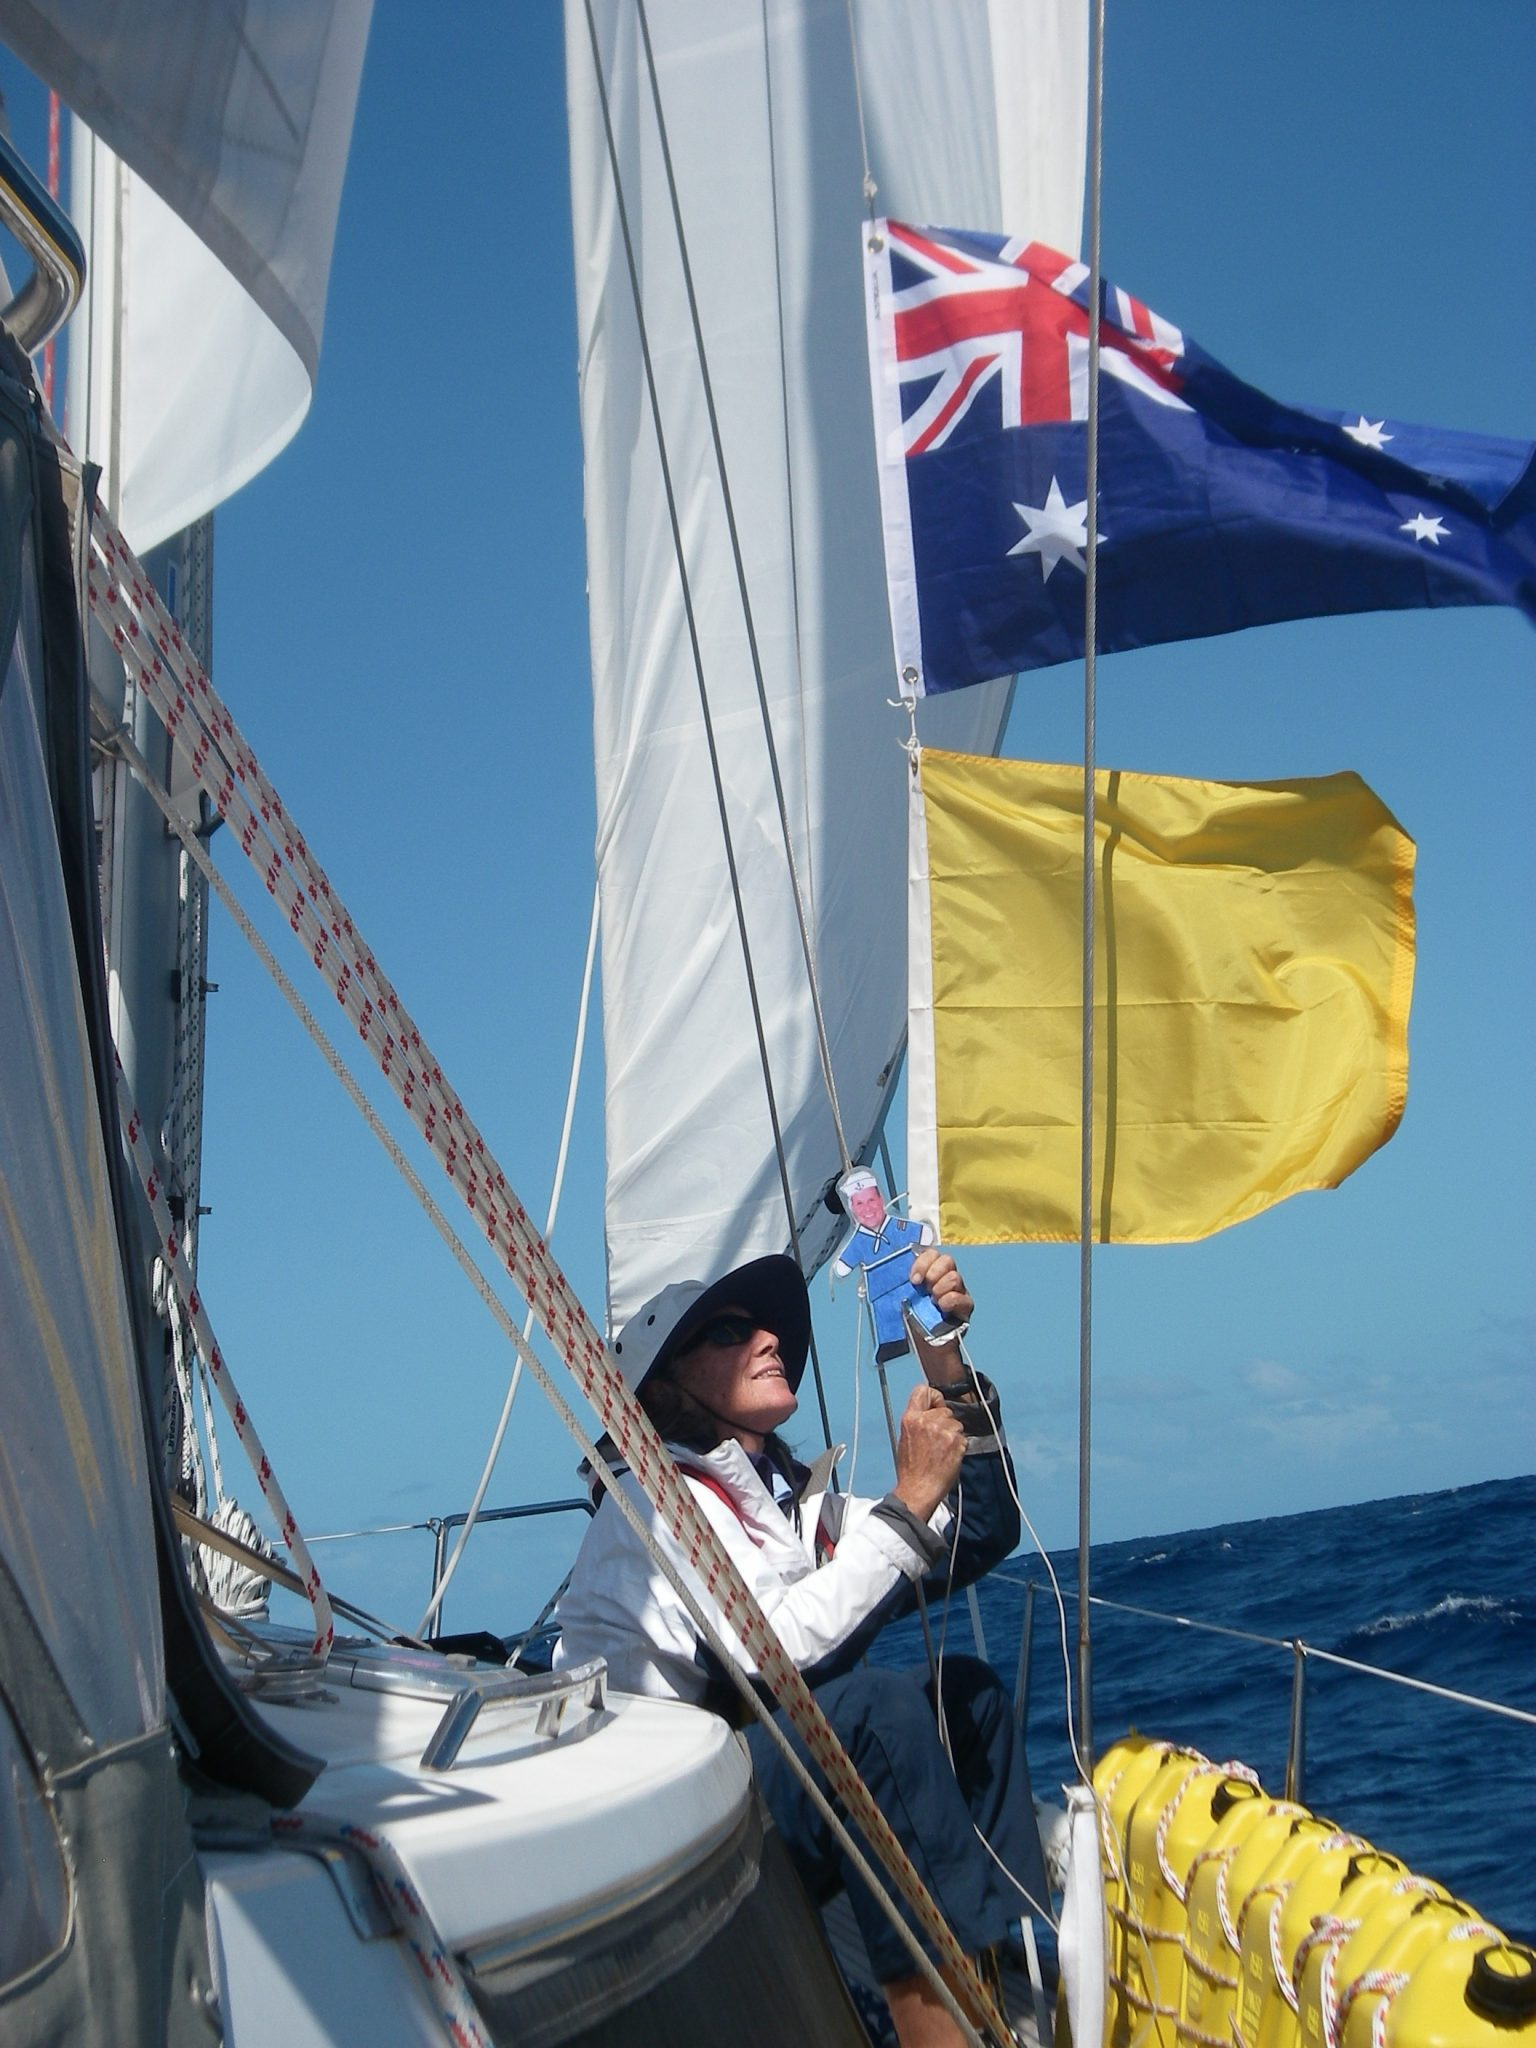 51-flat-mr-davis-and-anne-hoisted-the-australian-curtesy-flag-and-the-quarantine-flag-when-joyful-sailed-into-australian-waters